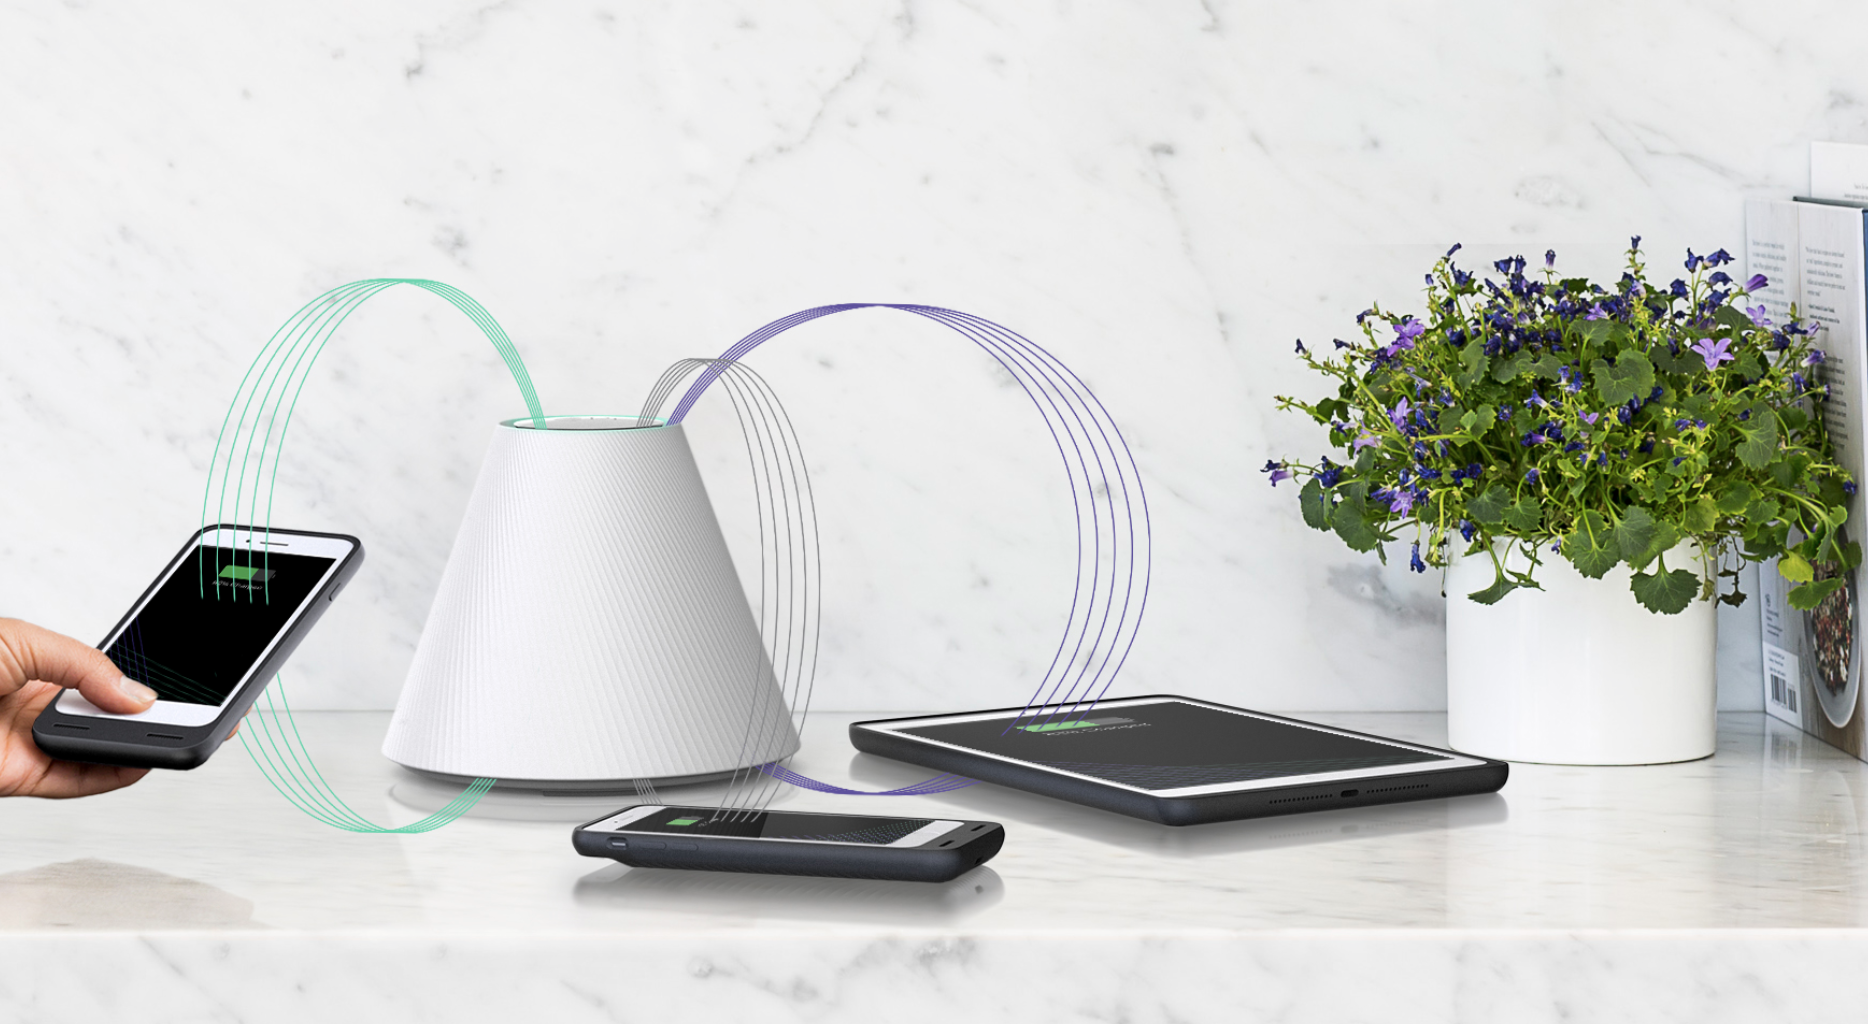 pi-wireless-charging-context-01